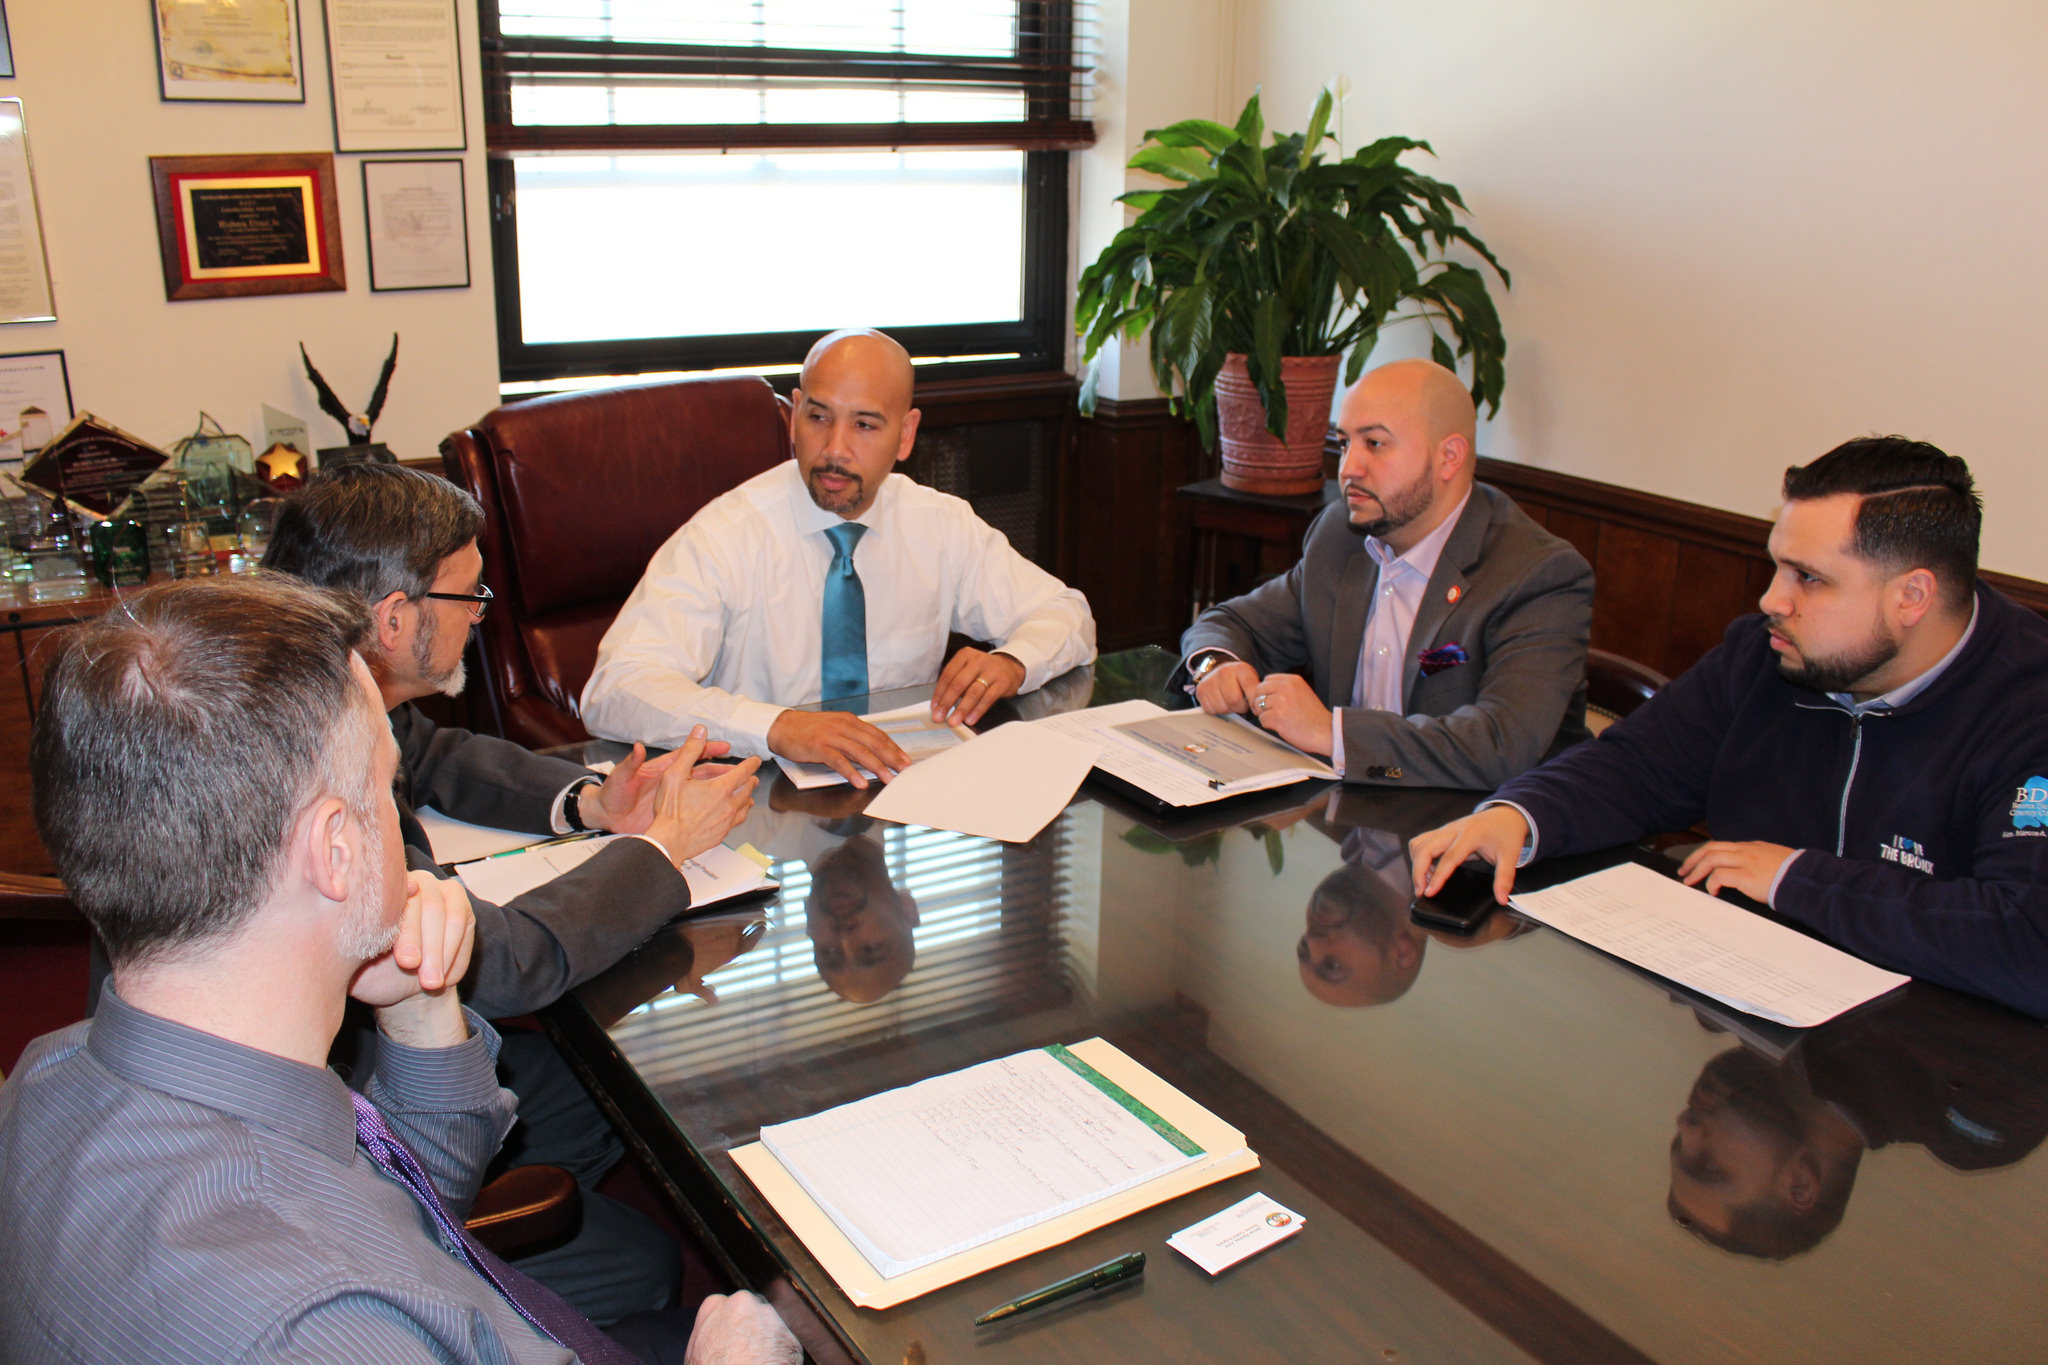 Bronx Borough President Ruben Diaz Jr. and City Council Member Rafael Salamanca Jr. discussed budget priorities for Council District #17 with their staffs during a meeting in the borough president's office on April 15, 2016.